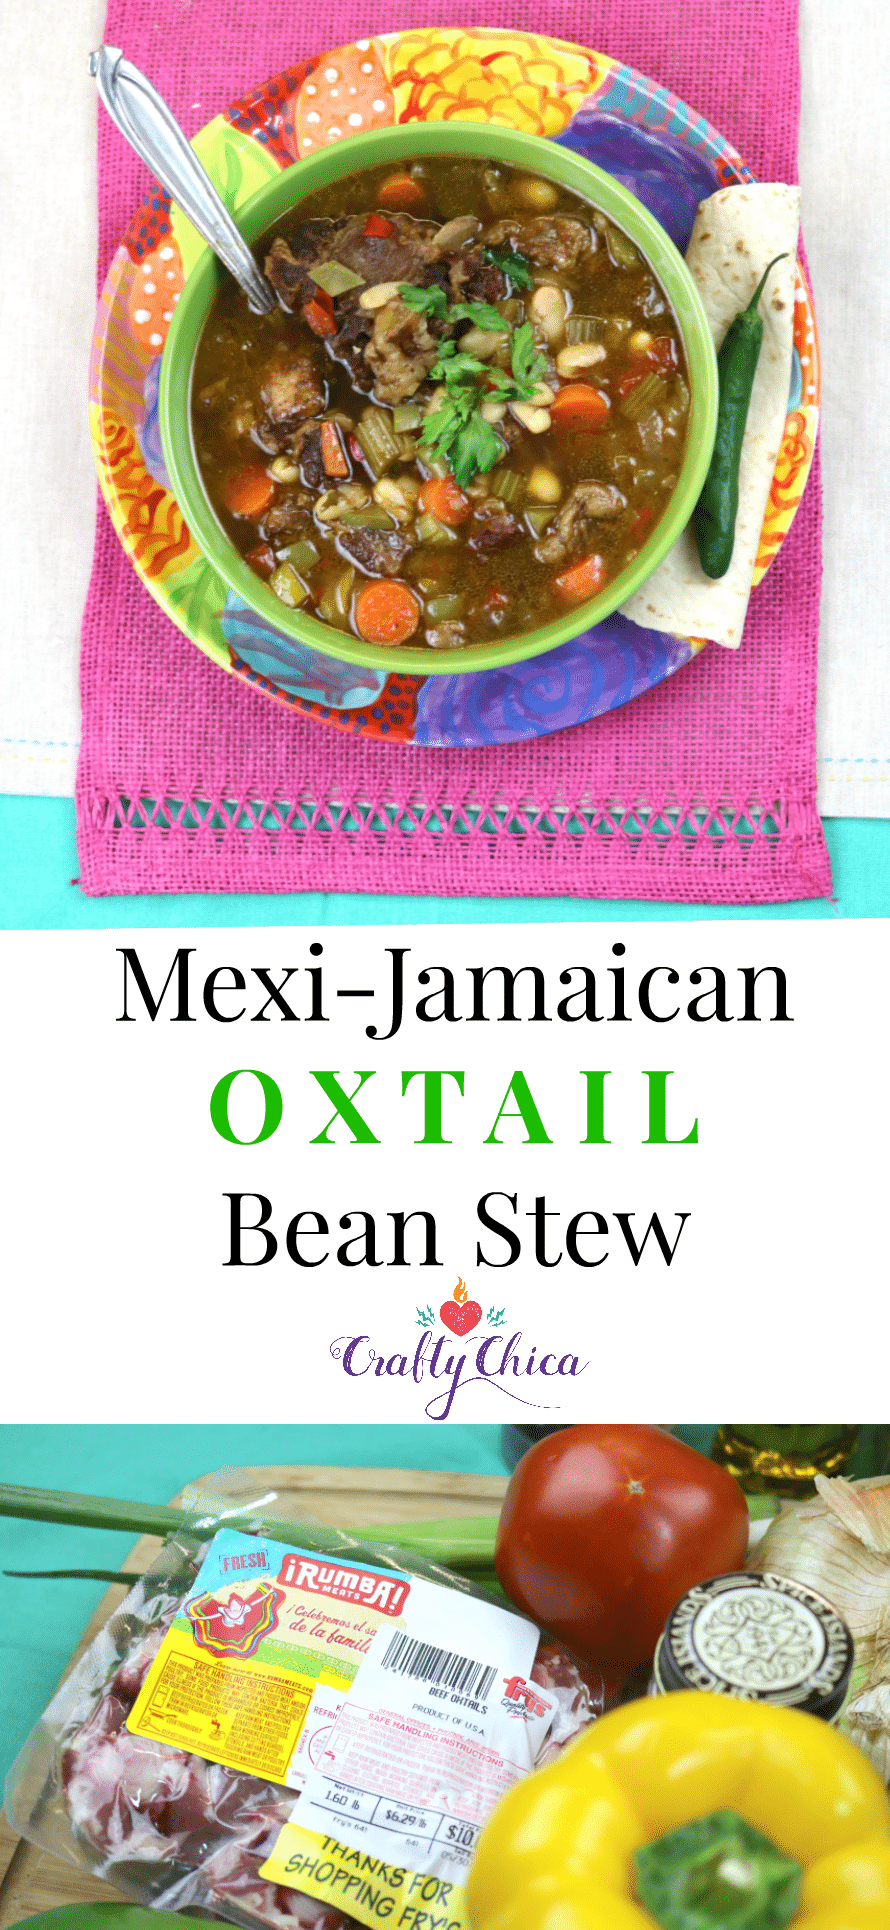 Mexi-Jamaican Oxtail Bean Stew by Crafty Chica.